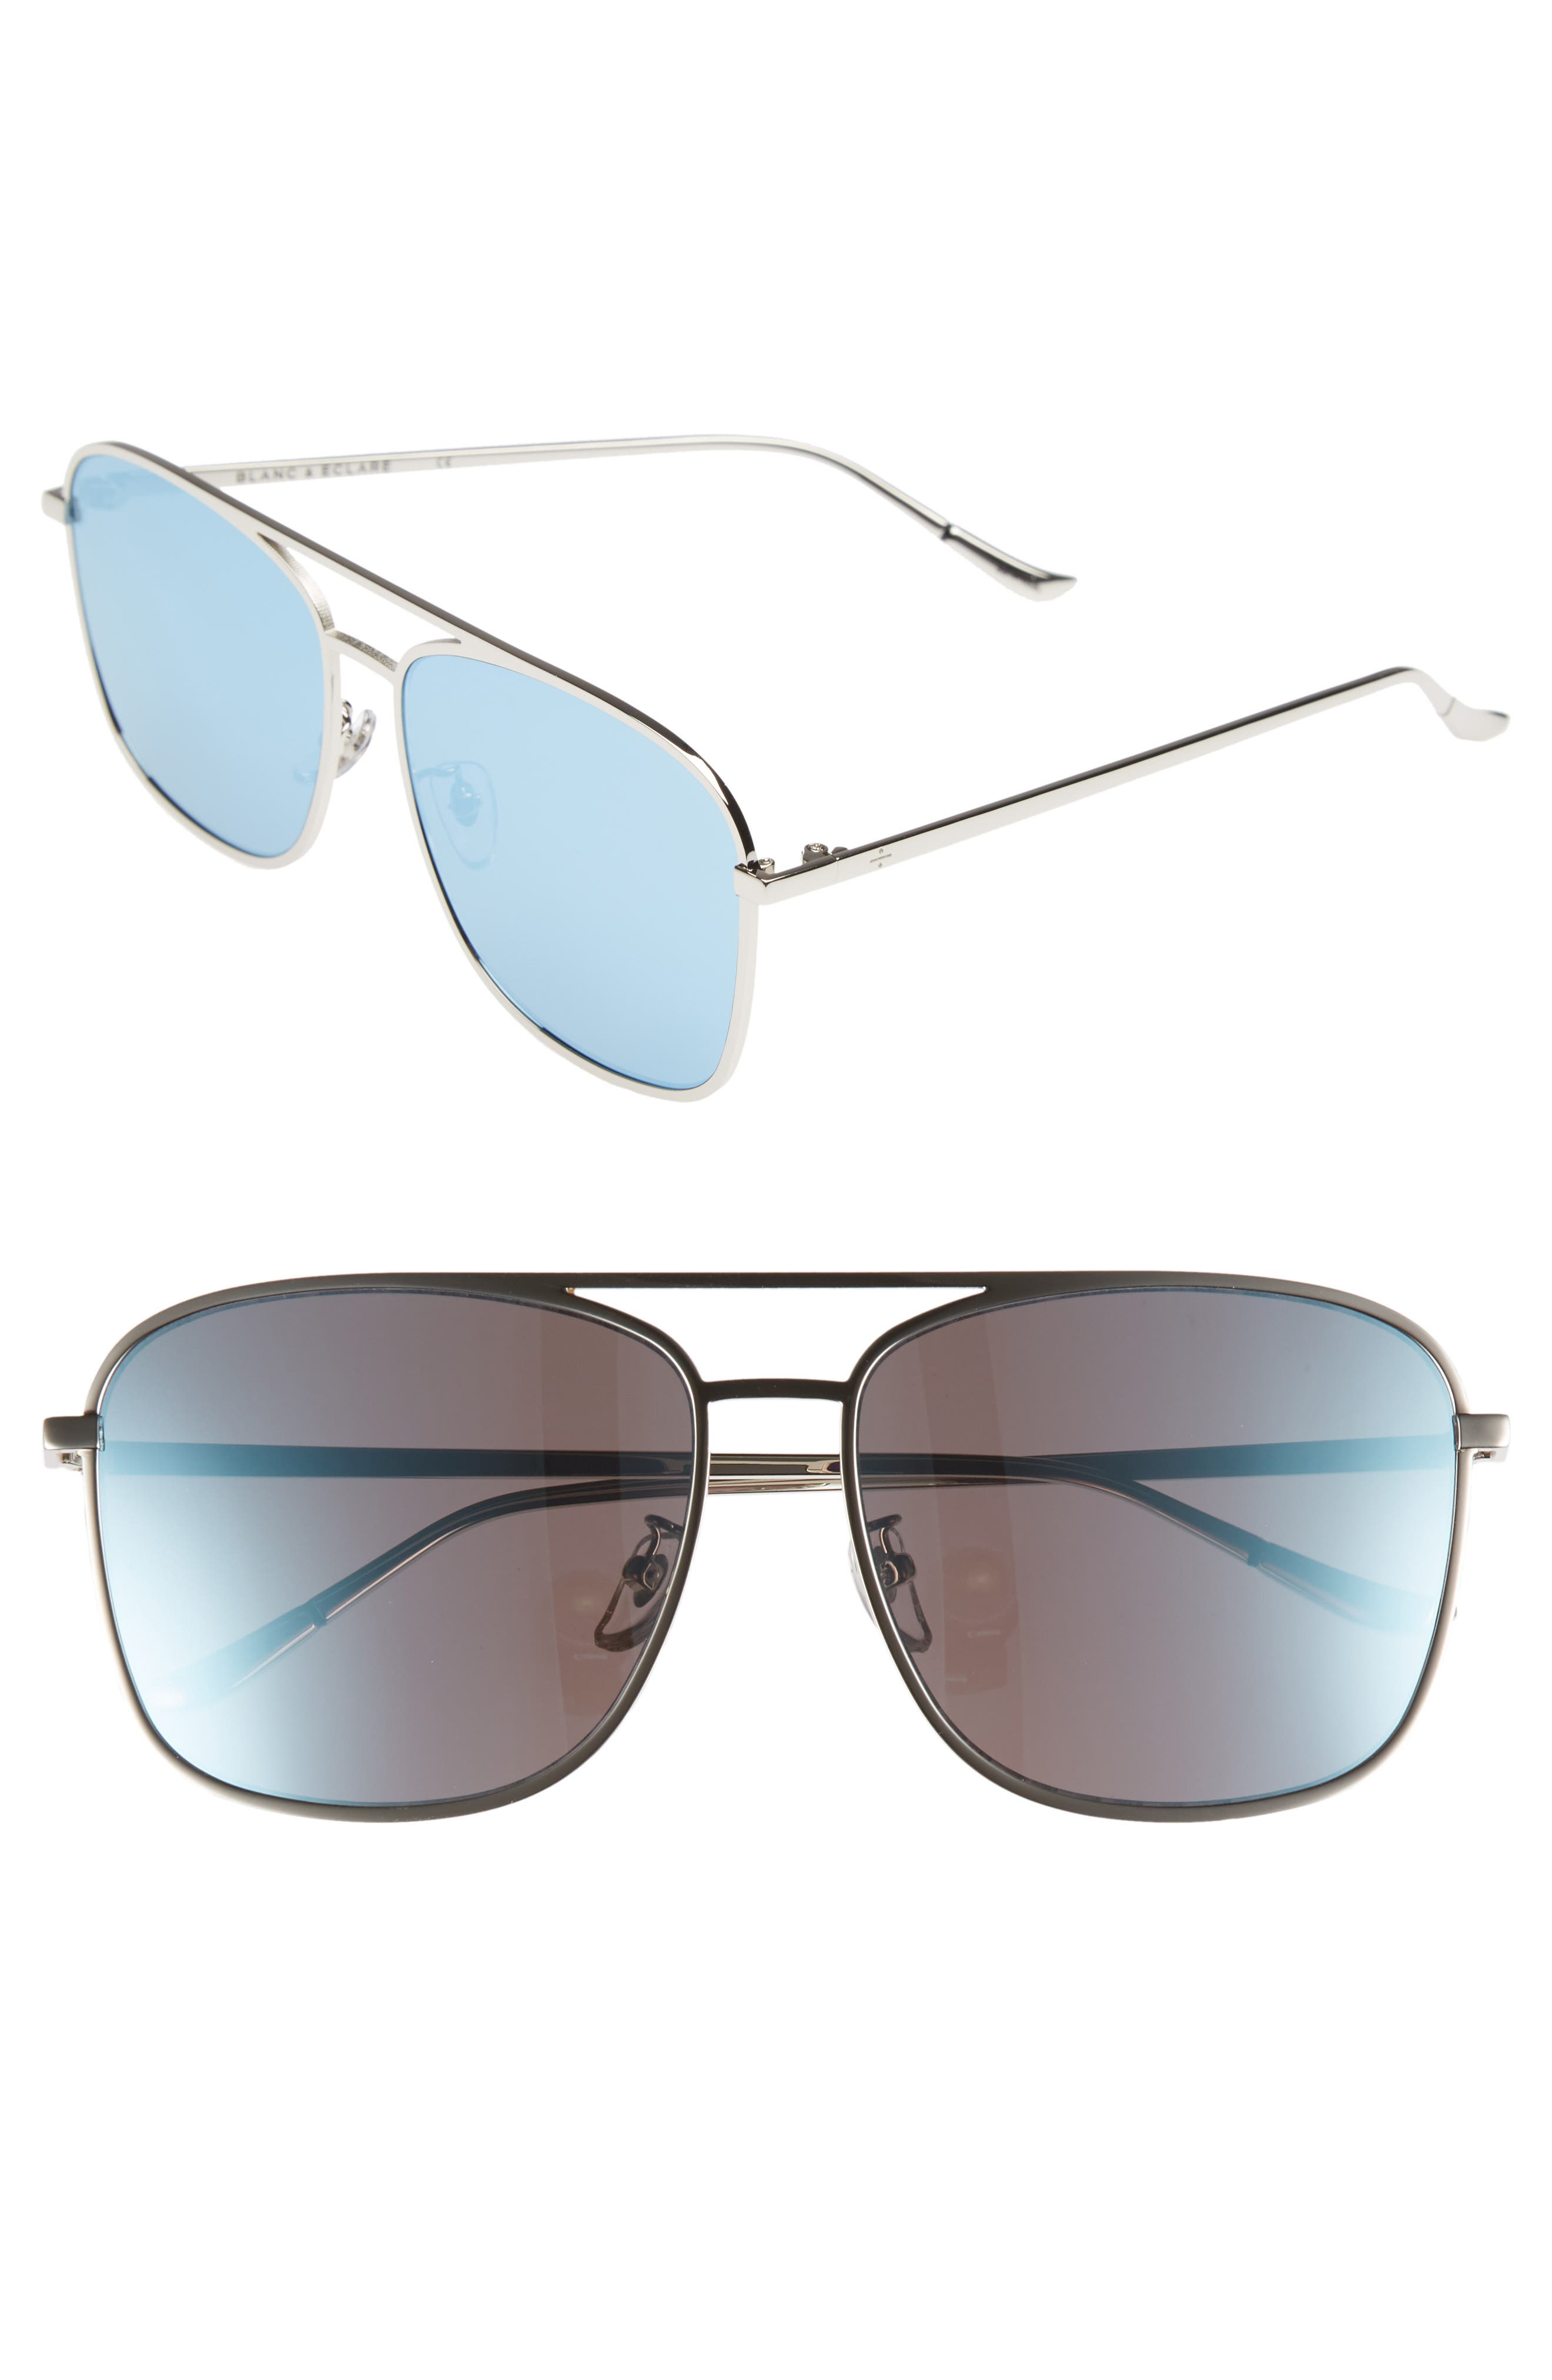 BLANC & ECLARE Geneva Large 60mm Polarized Metal Aviator Sunglasses,                         Main,                         color, Silver/ Blue